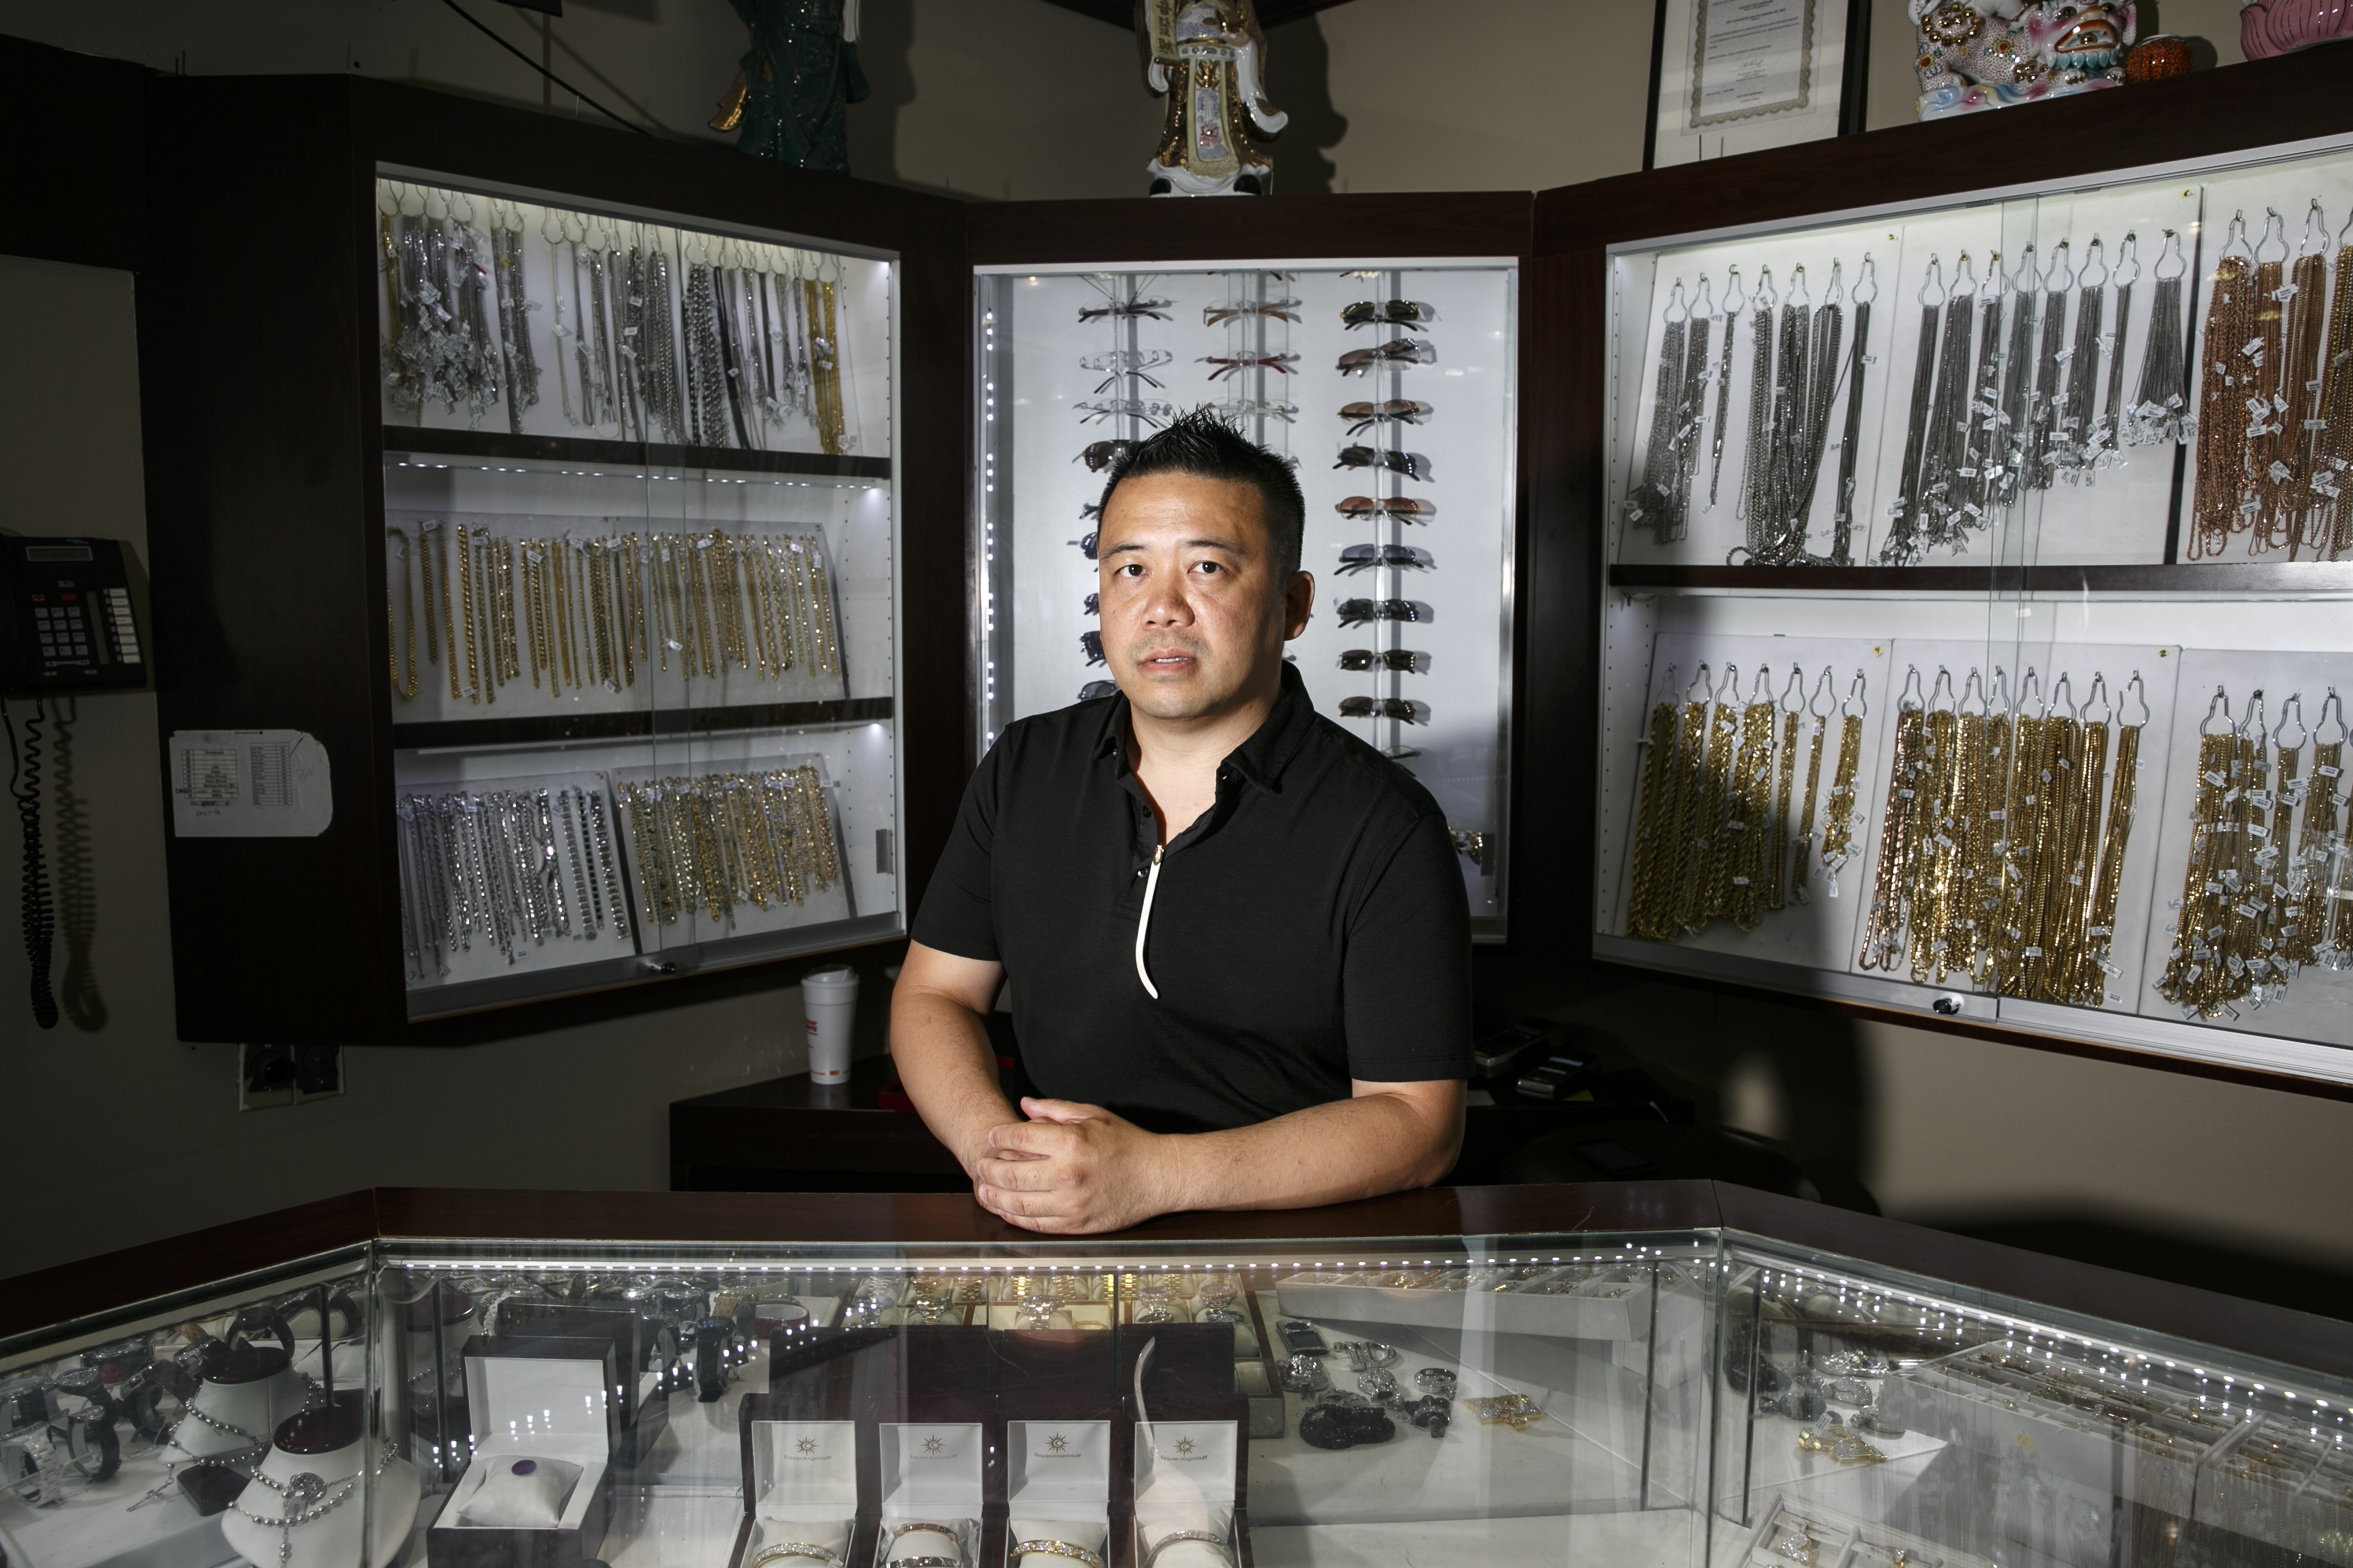 Gary Yee, manager of Golden Sun Jewelry, stands in front of some of the Cartier sunglasses he sells.